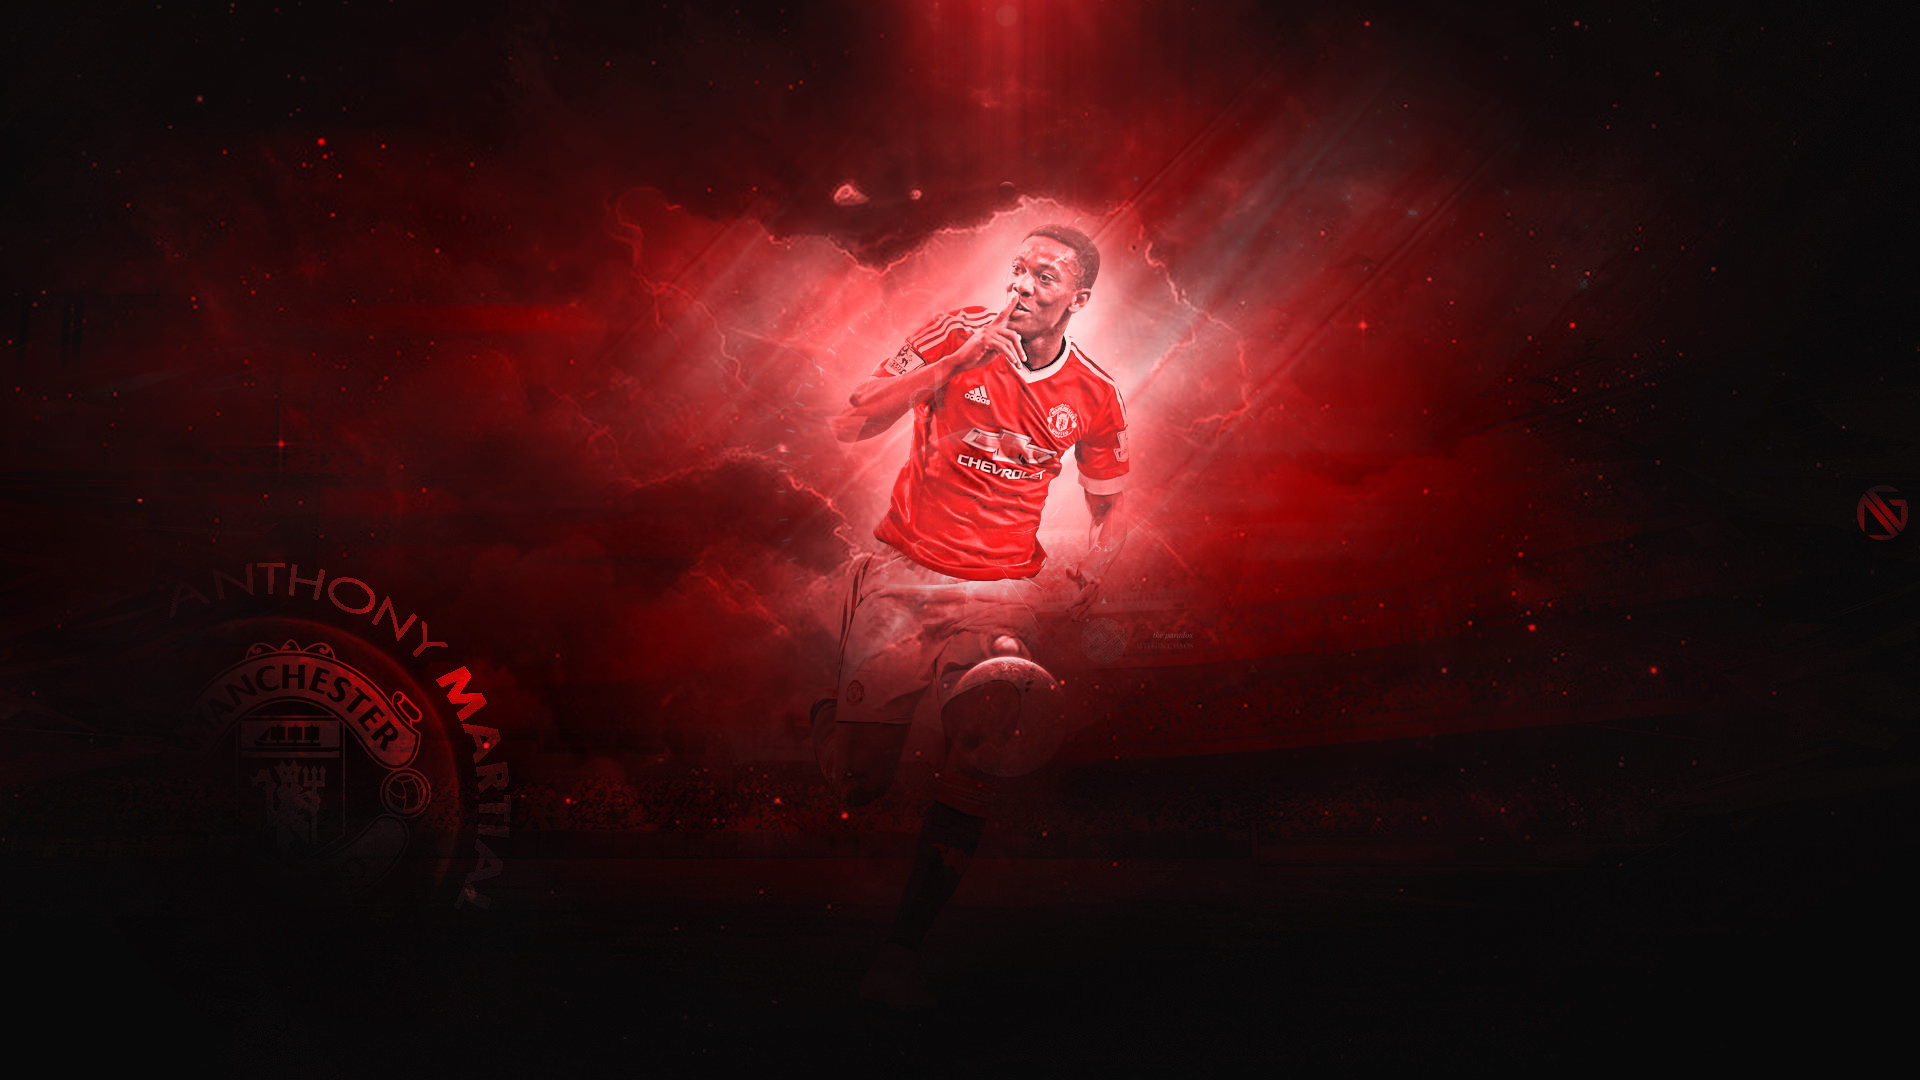 Manchester United Wallpaper Iphone X Manchester United Wallpaper Hd 68 Images